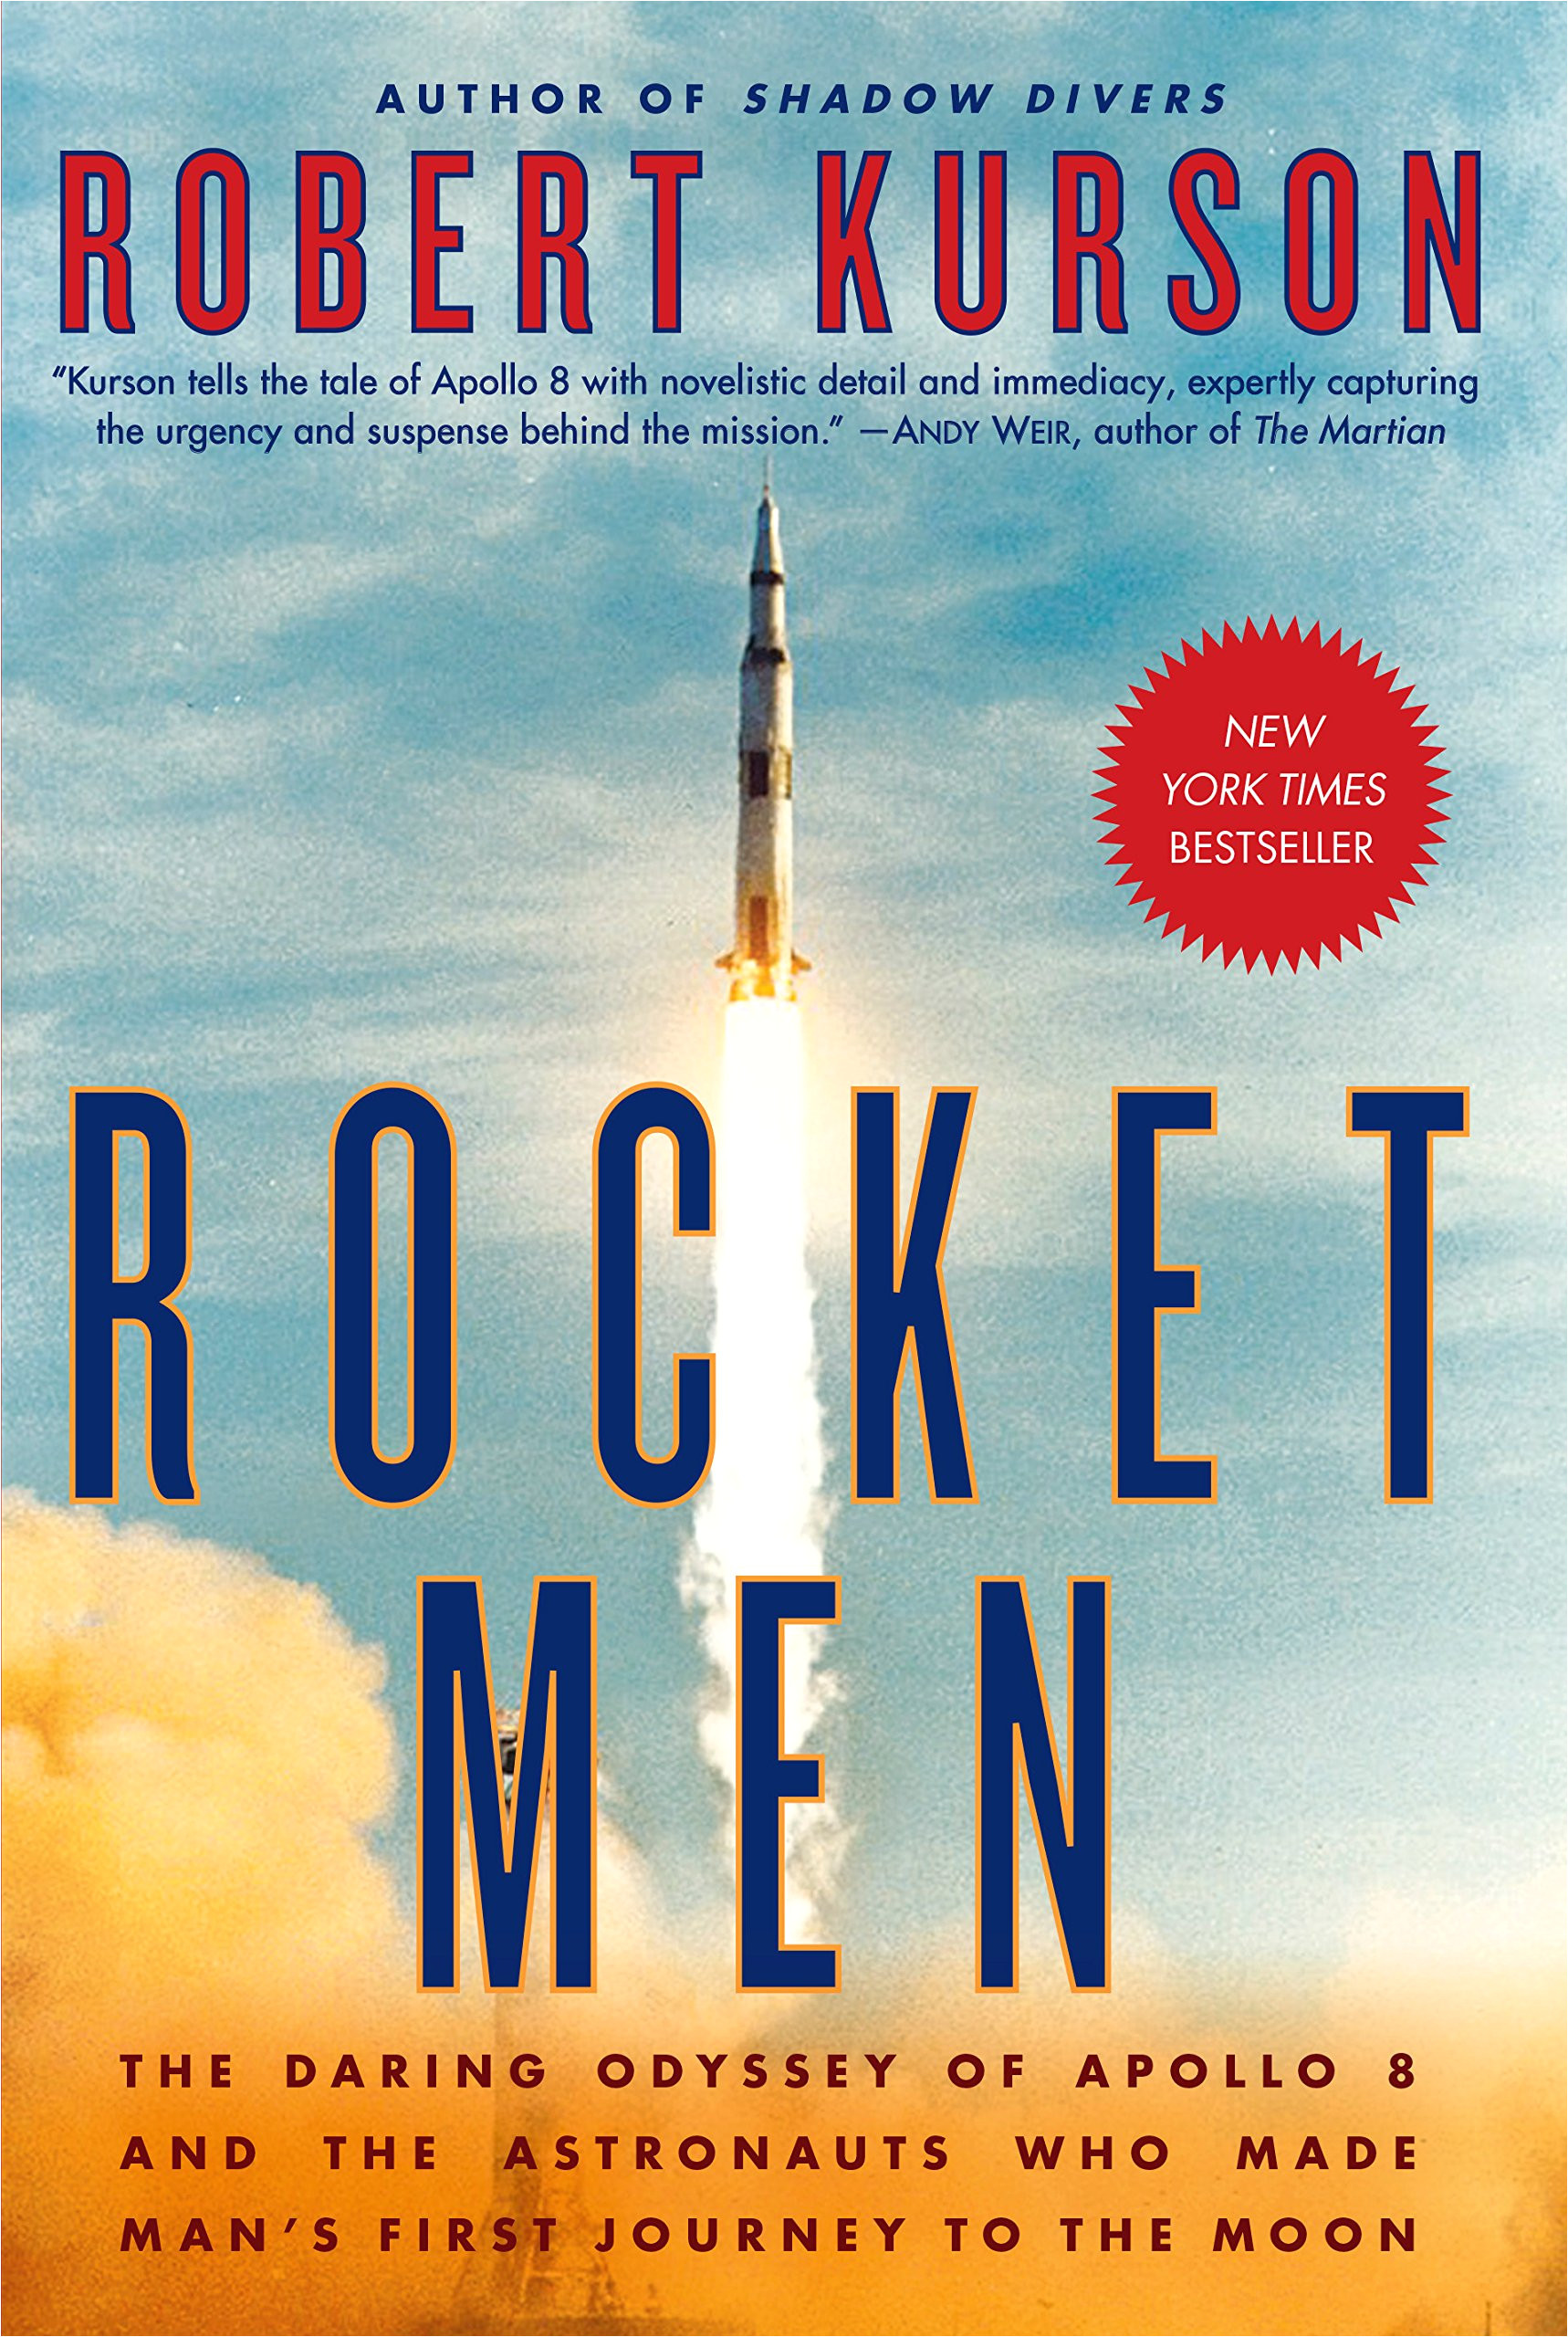 rocket men the daring odyssey of apollo 8 and the astronauts who made man s first journey to the moon robert kurson 9780812988703 amazon com books